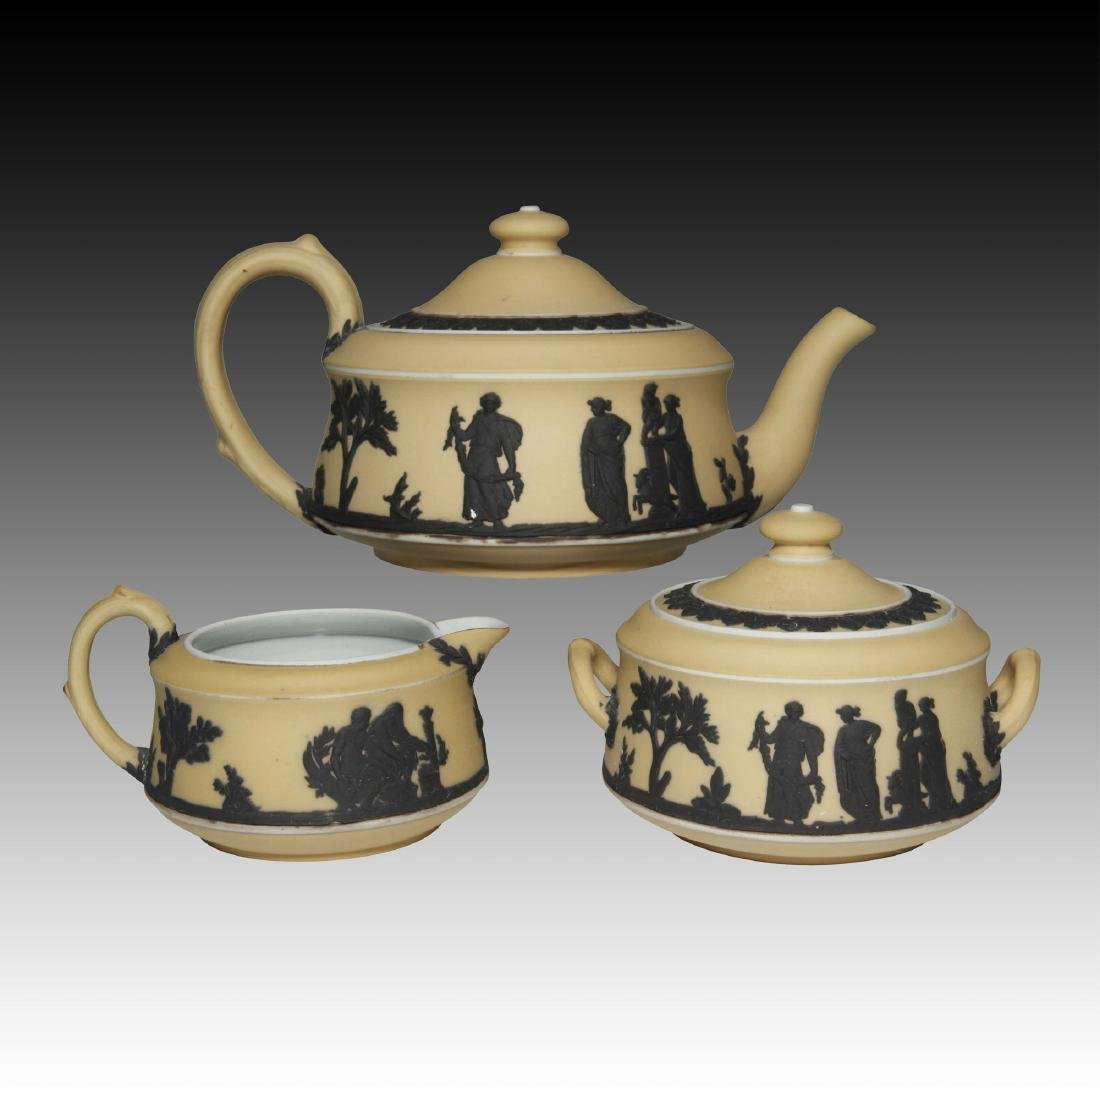 Rare Wedgwood Jasperware Black on Caramel Tea Set